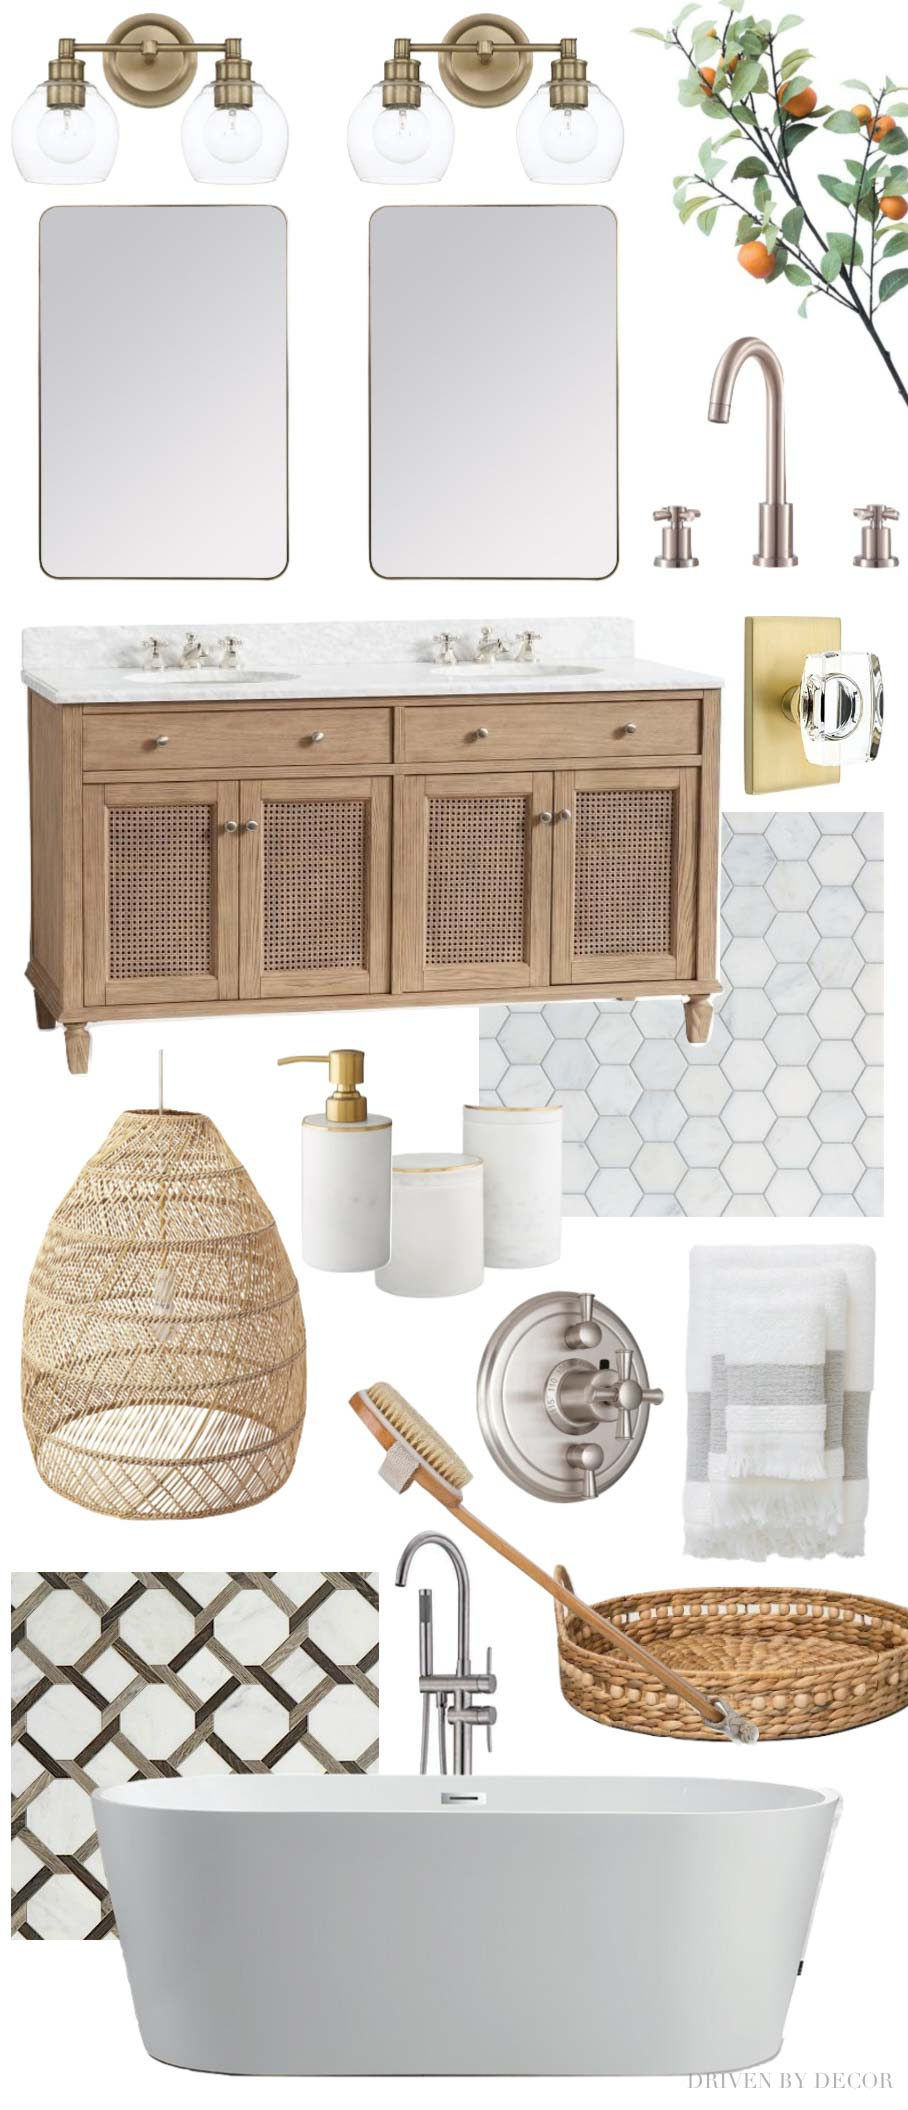 How to create an interior design mood board like this one! Post includes a step by step!